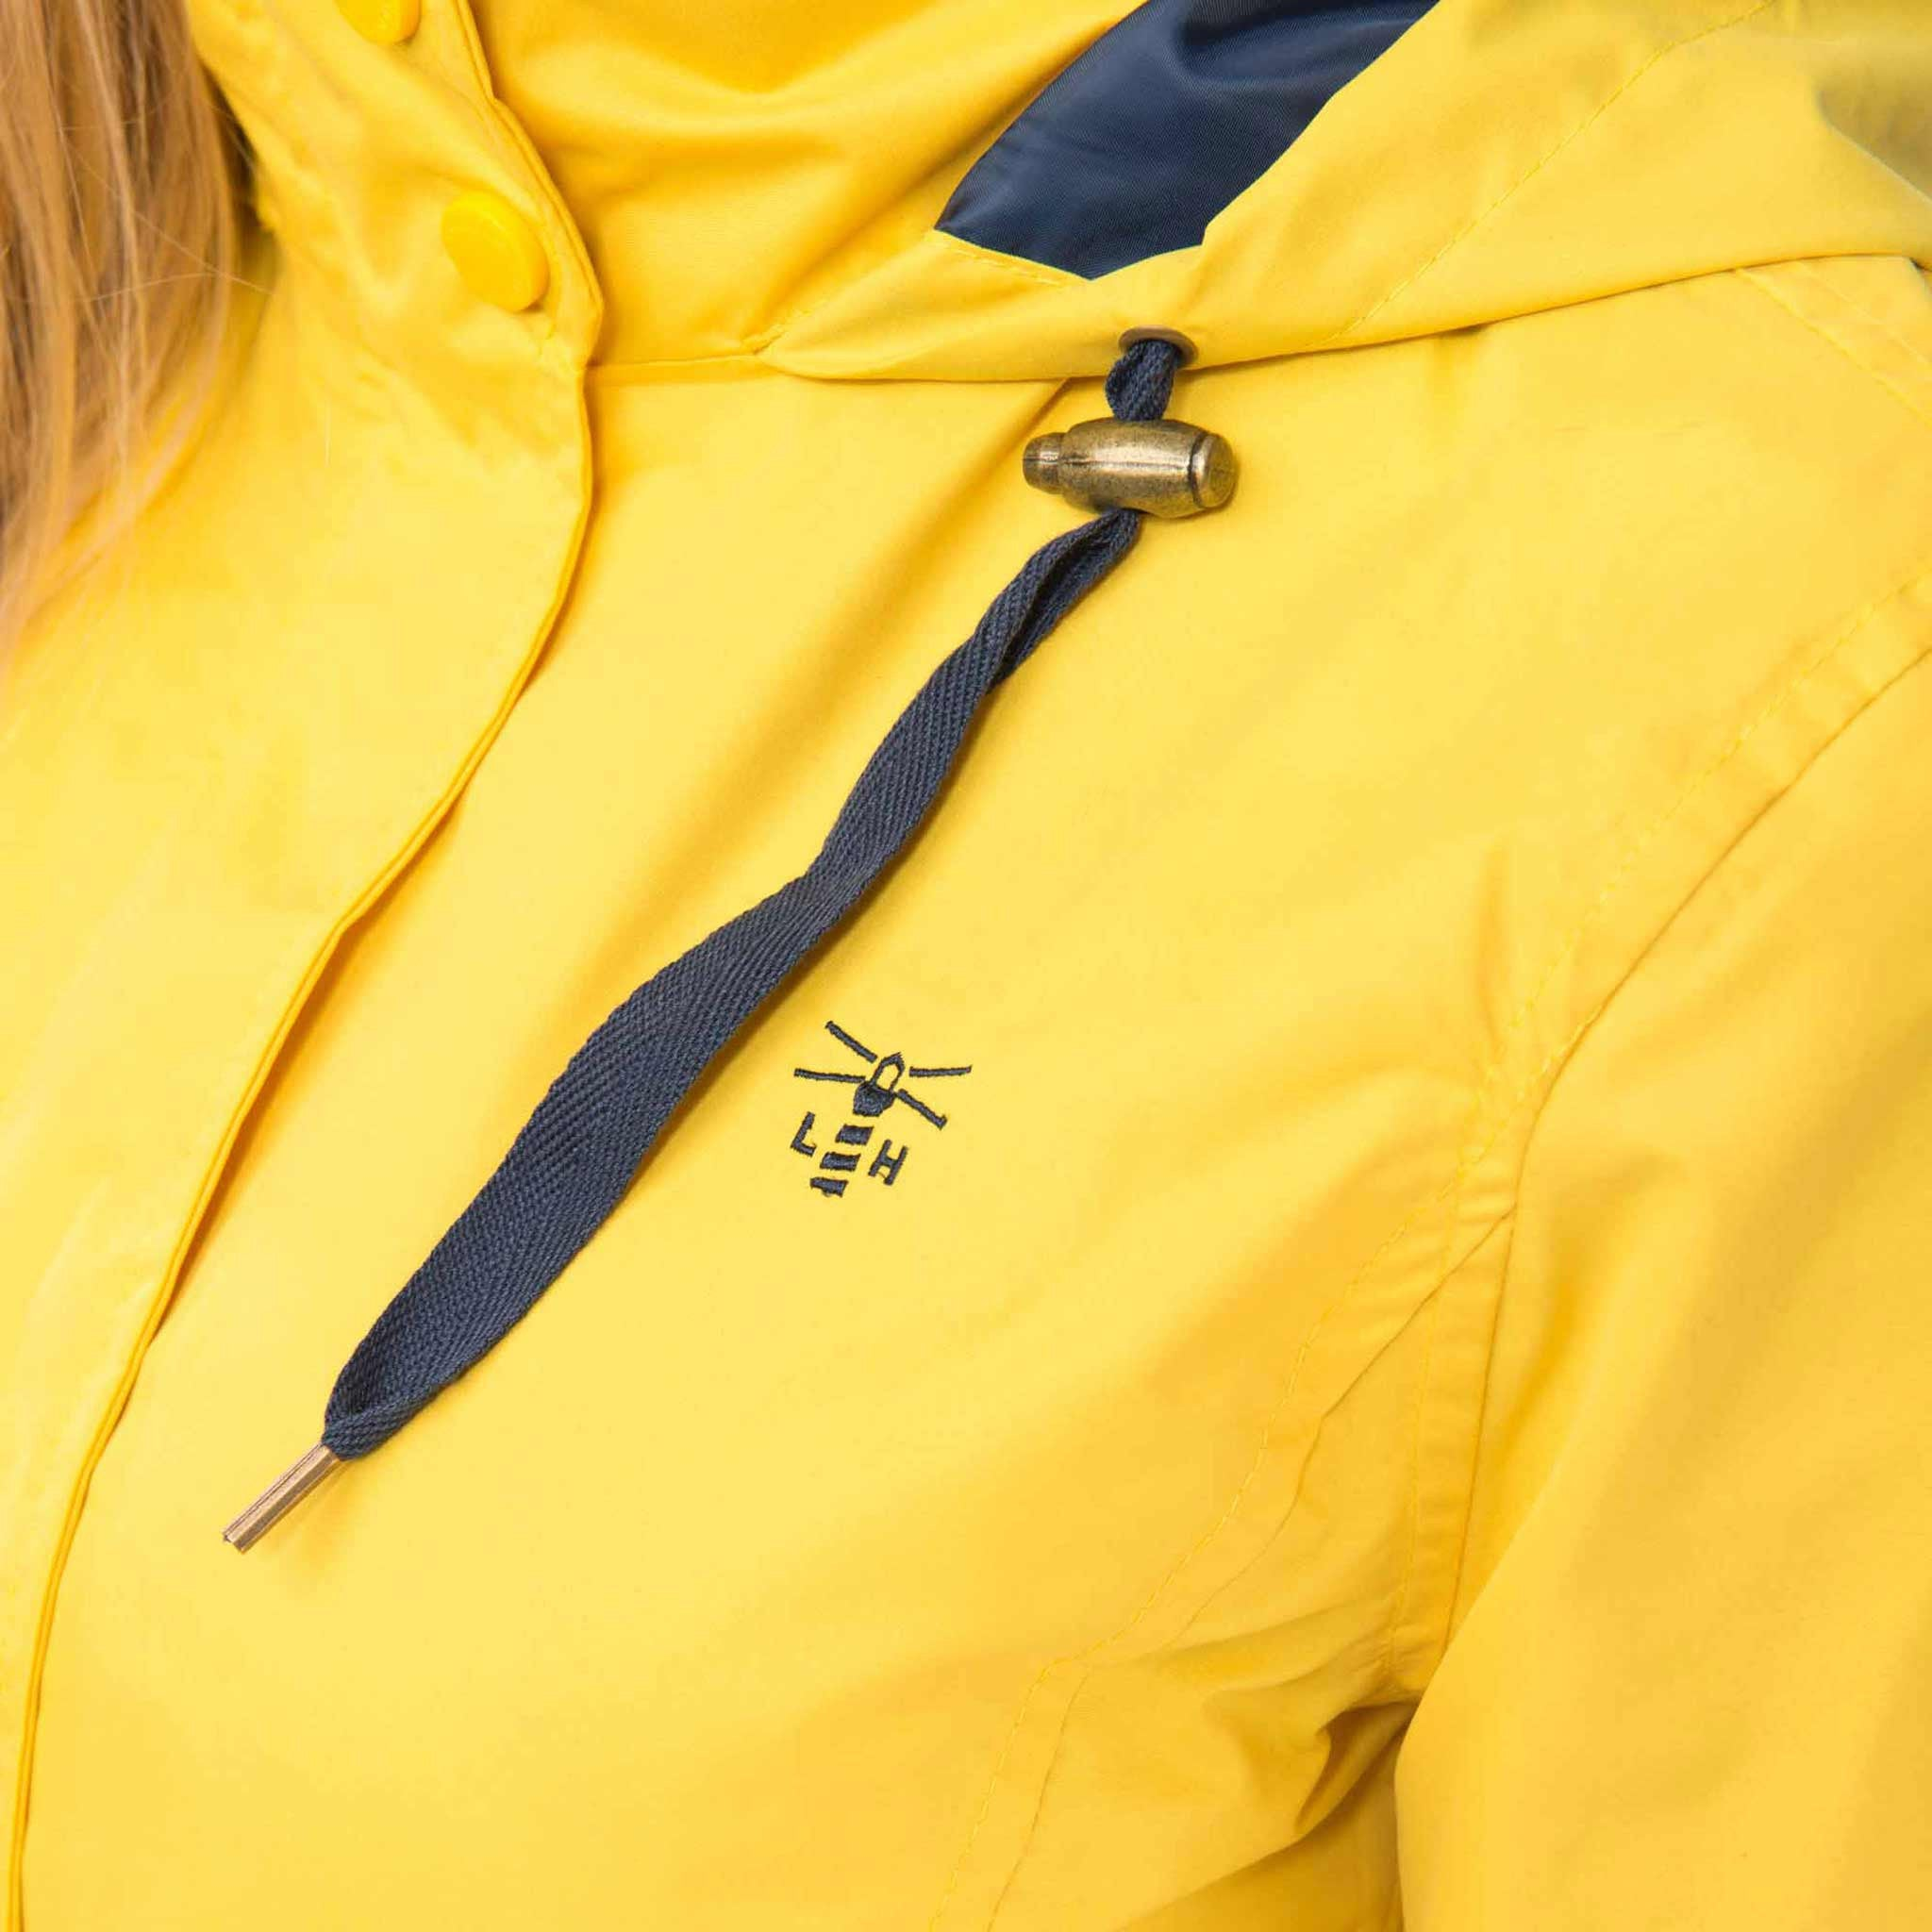 Beachcomber Waterproof Hooded Jacket in Sunbeam Yellow, Modelled Detail View | Lighthouse